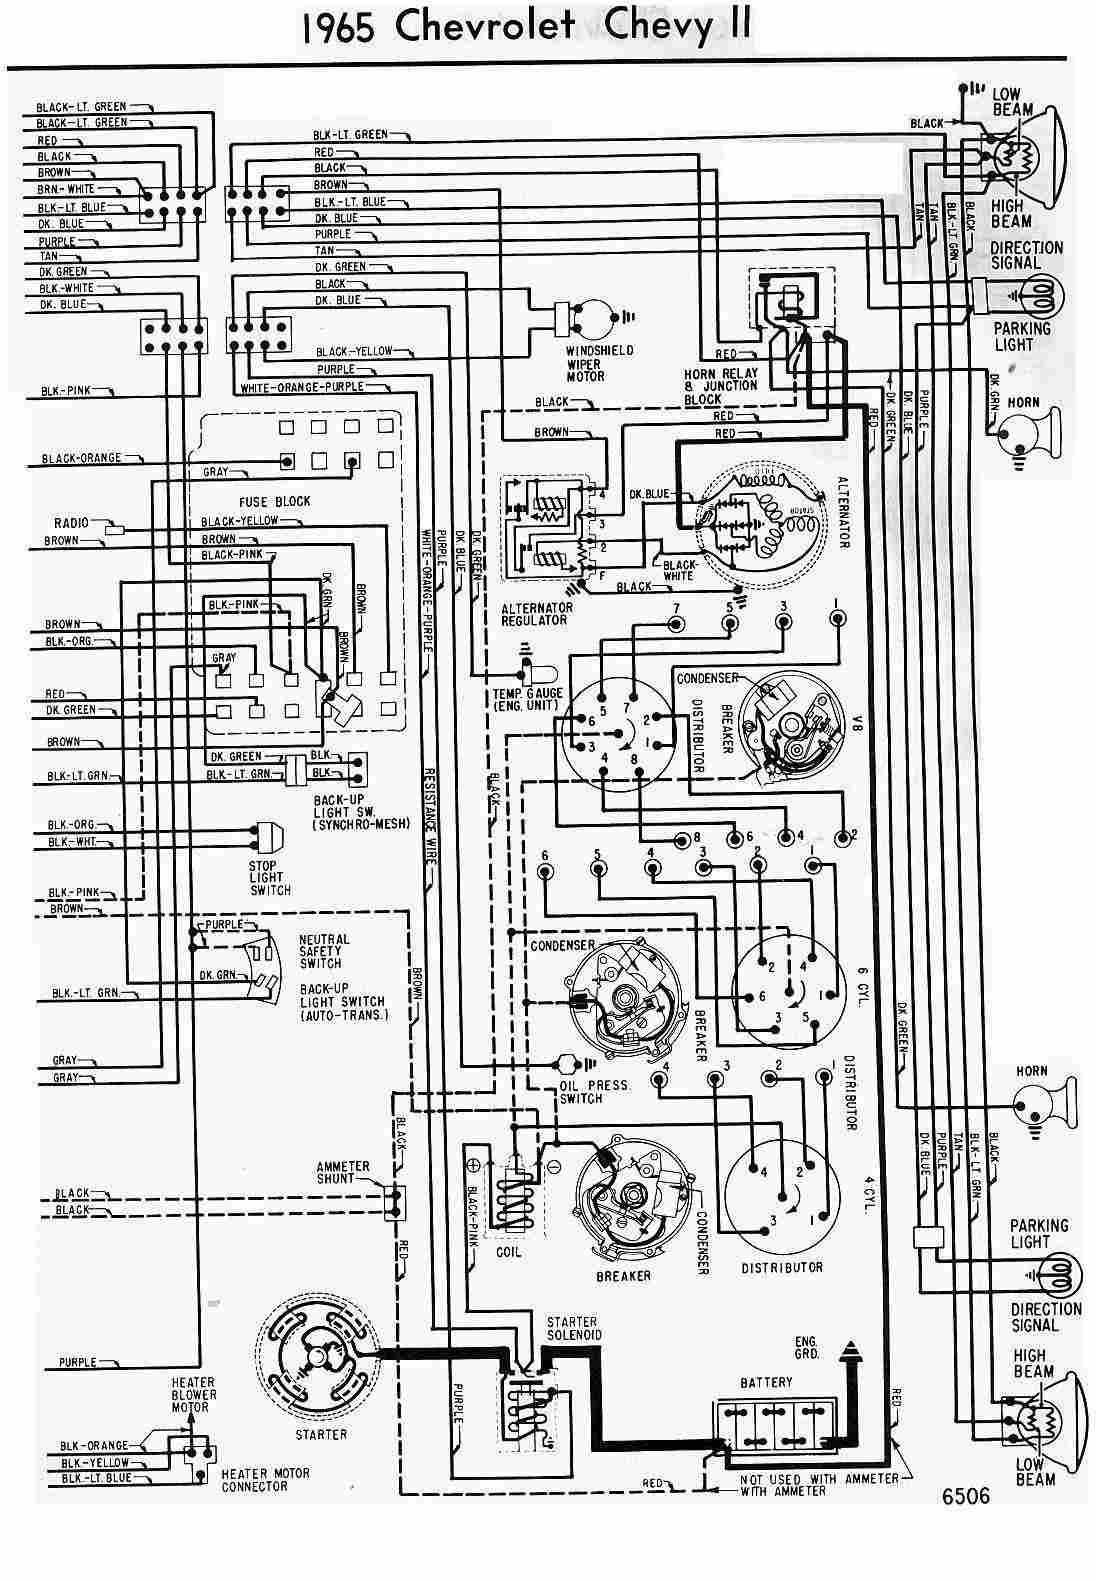 small resolution of 1975 chevy truck wiring harness wiring diagram ebook1975 nova wiring harness wiring diagram1971 chevy nova wiring